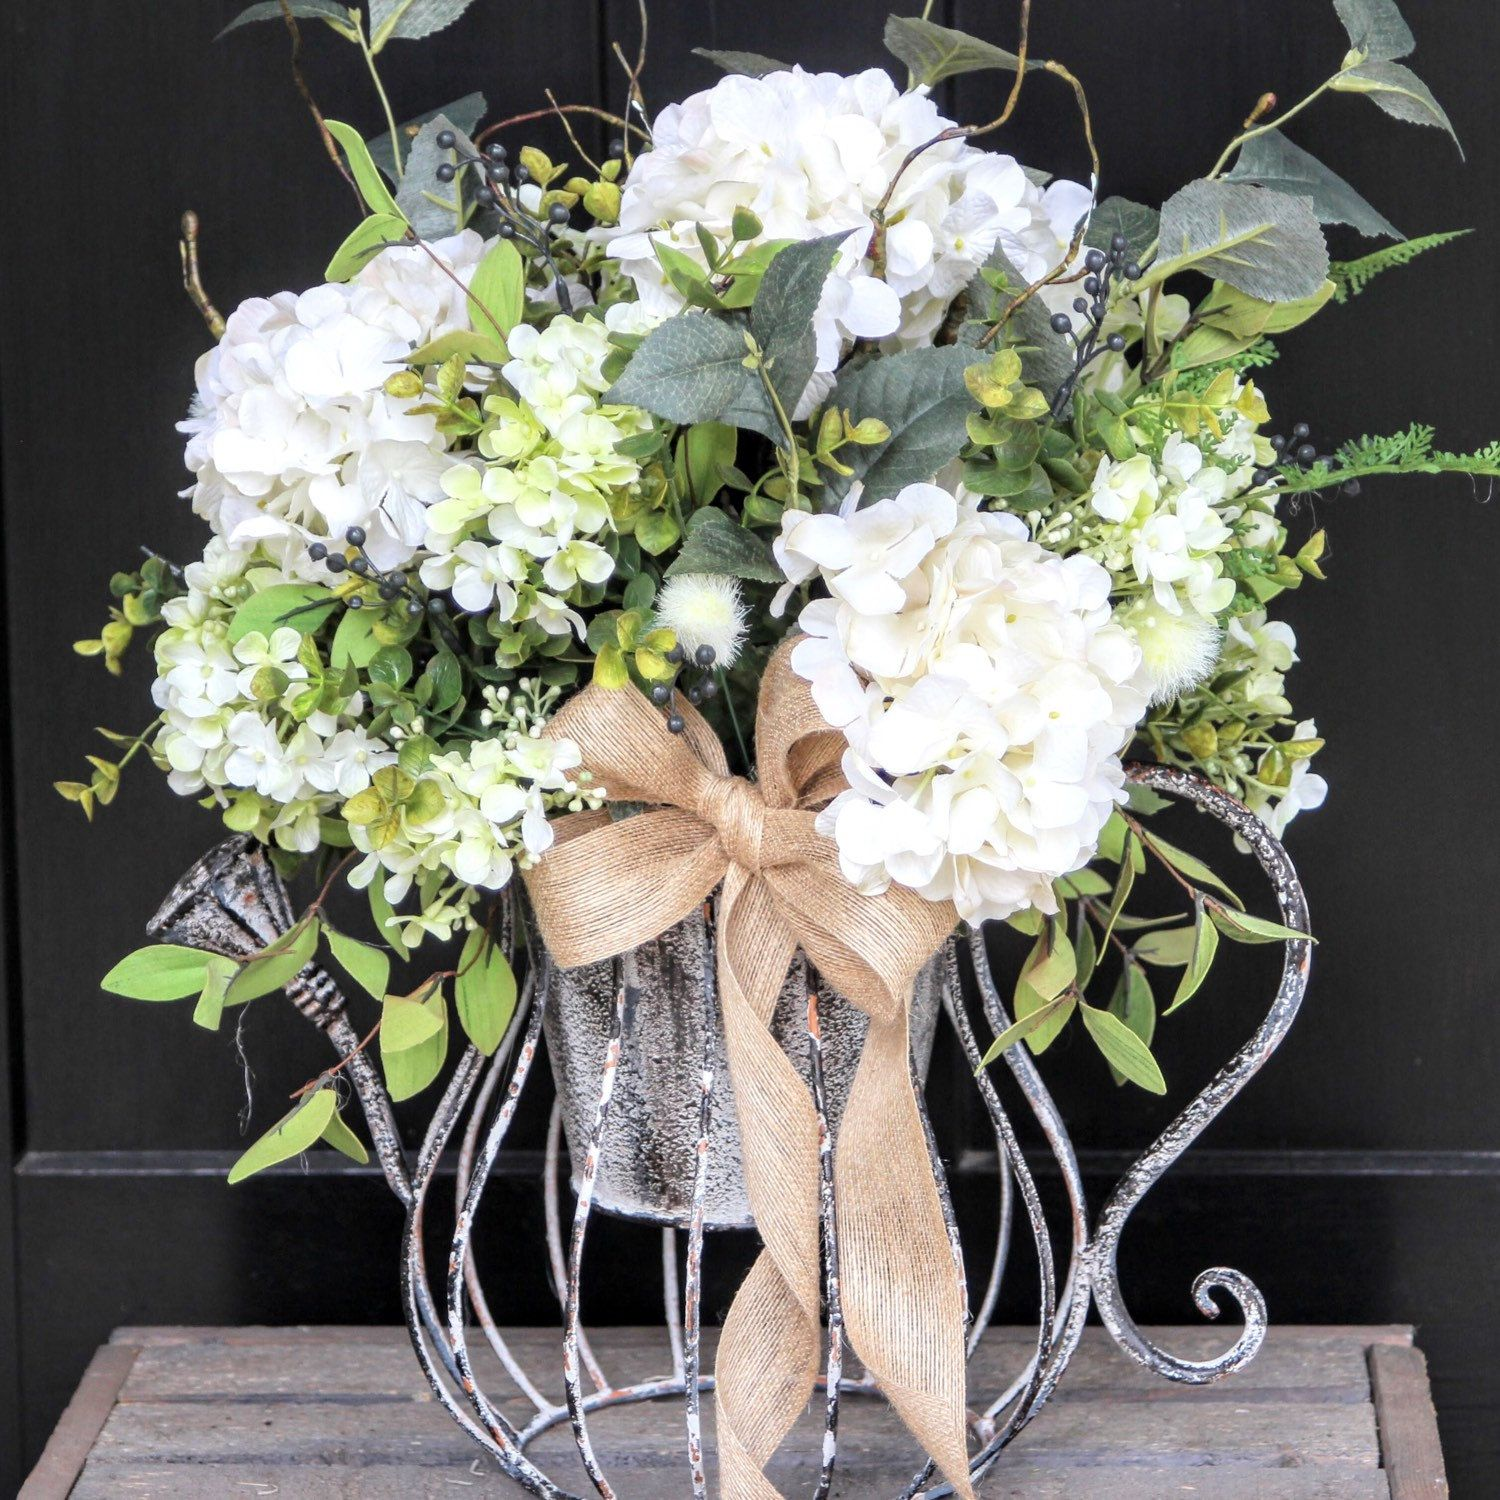 Distressed Watering Can Arrangement Perfect For Spring Coffee Table Flowers Arrangements Large Flower Arrangements Coffee Table Flowers